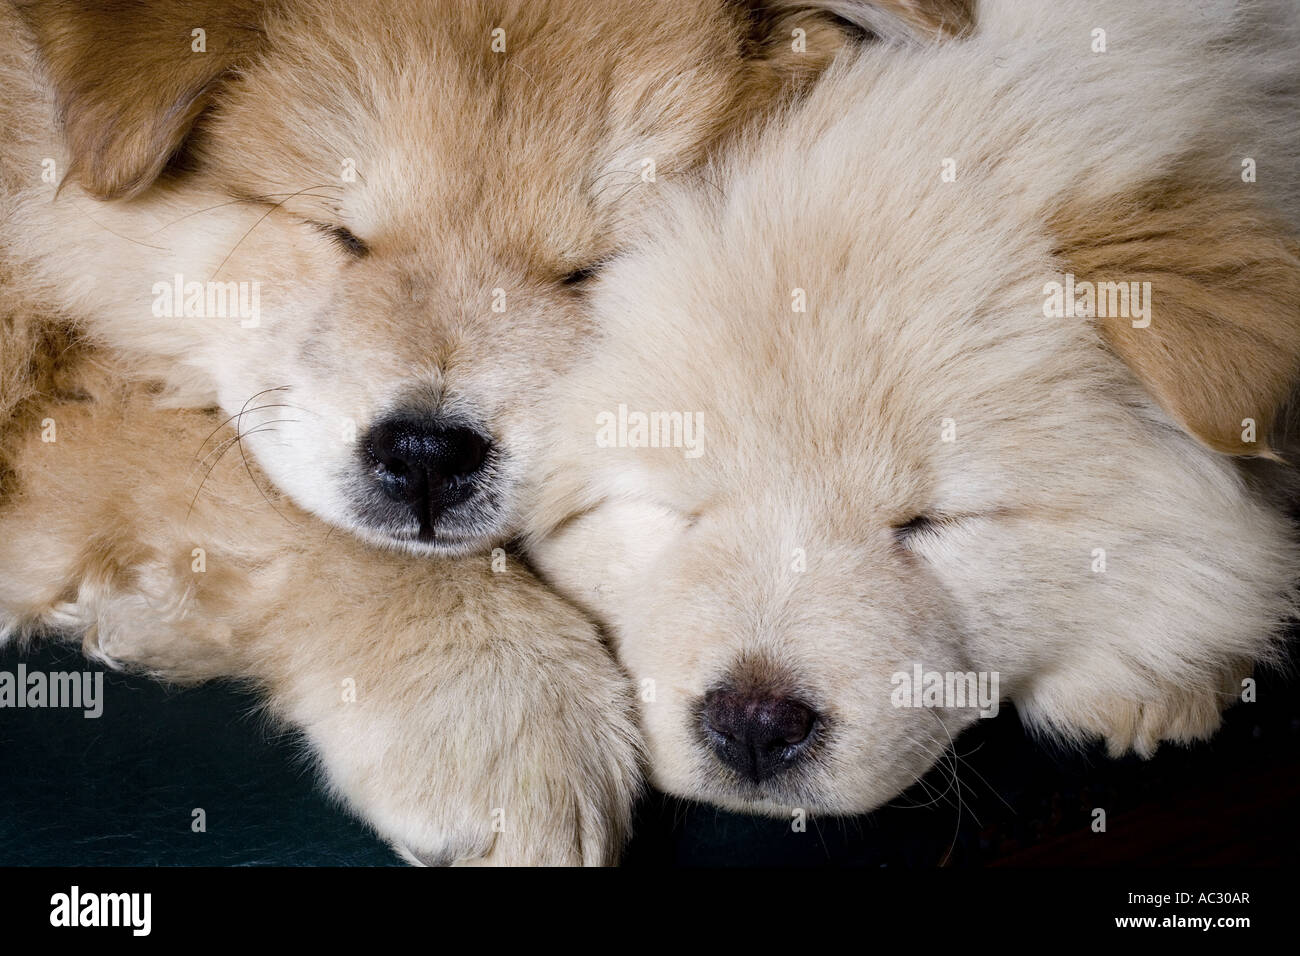 Chow puppies asleep - Stock Image